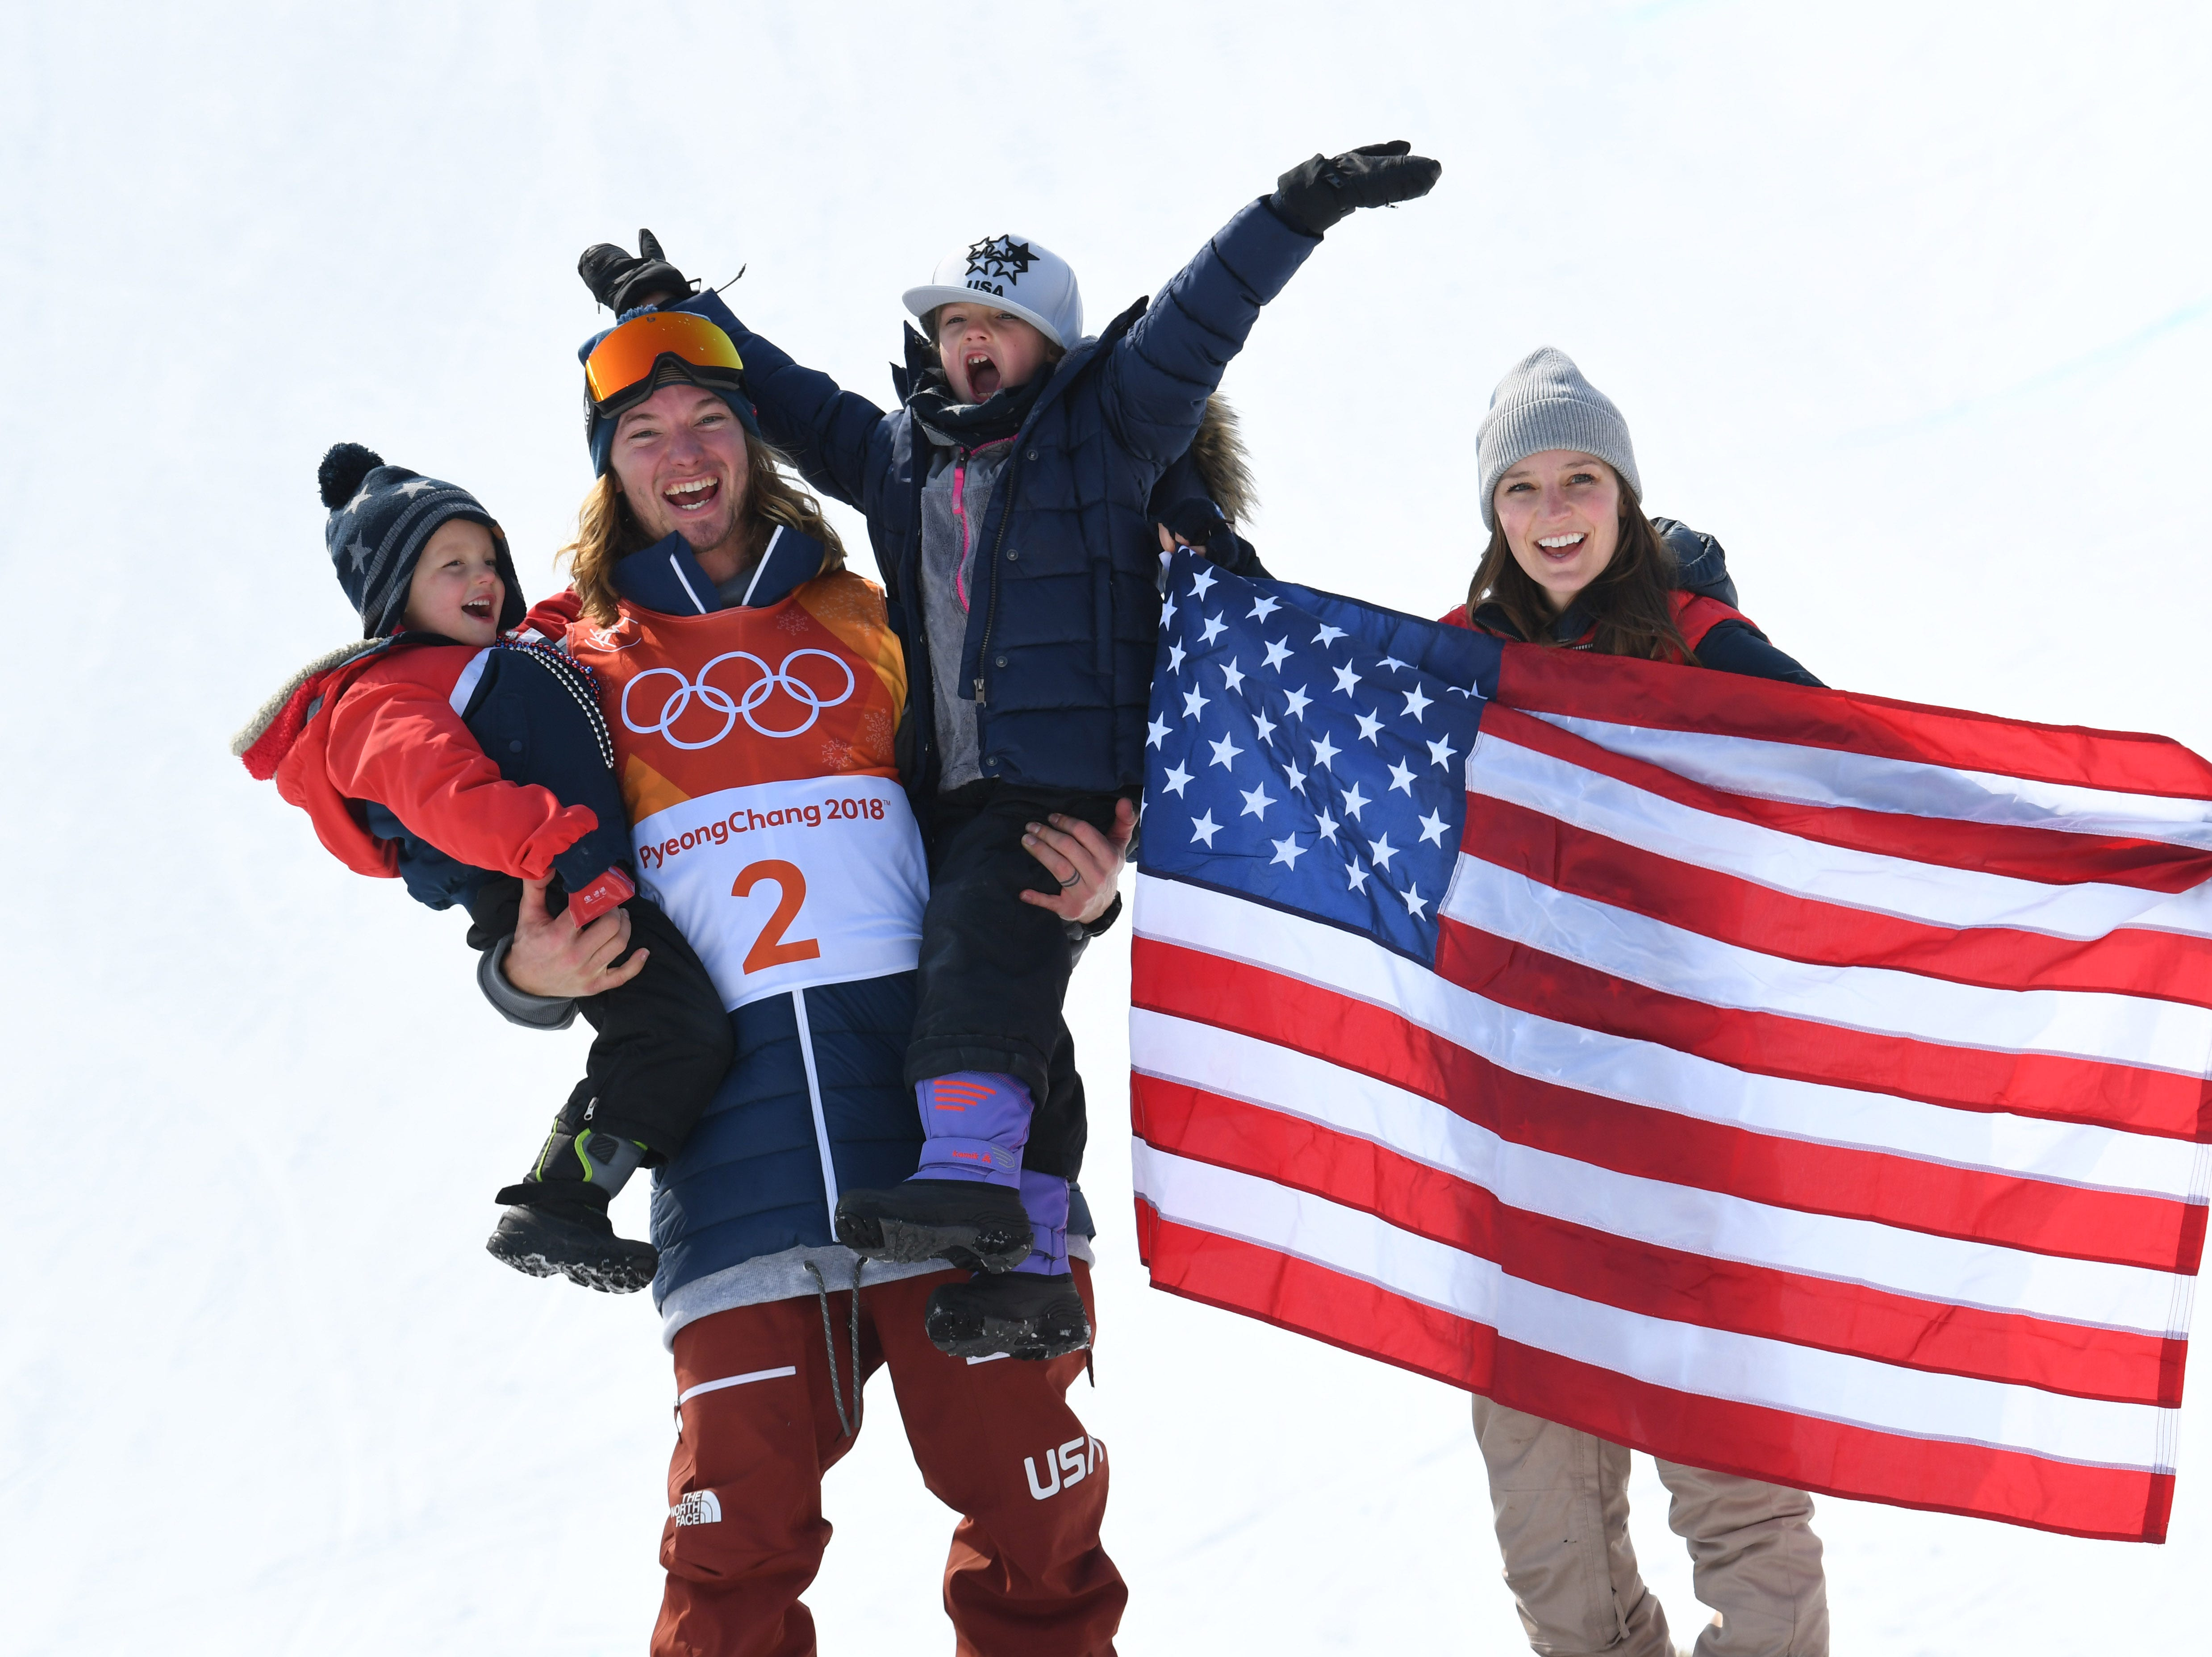 Feb. 22: David Wise (USA) celebrates with his family after winning gold in the men'ss halfpipe final during the Pyeongchang Winter Games.